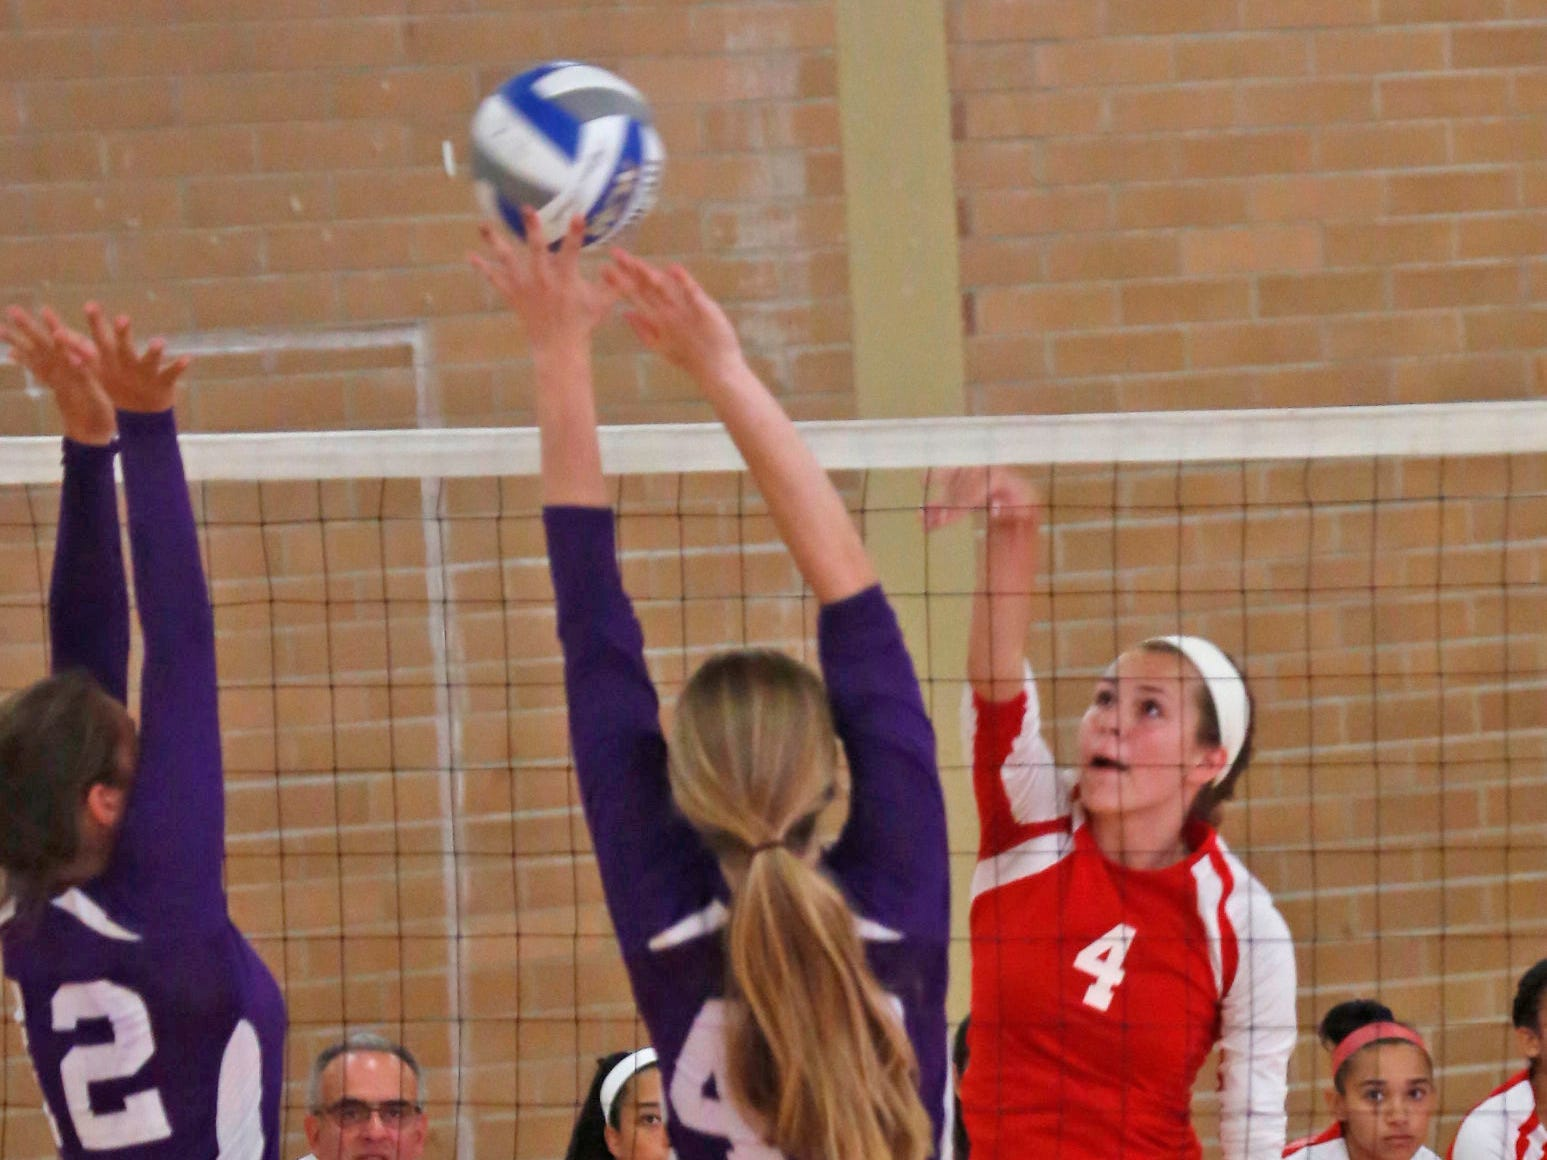 North Rockland's Madison Monahan (4) returns to New Rochelle's Madeline Smith (42) during the game at North Rockland High School in Thiells on Sept. 2, 2014. New Rochelle won the first two sets.